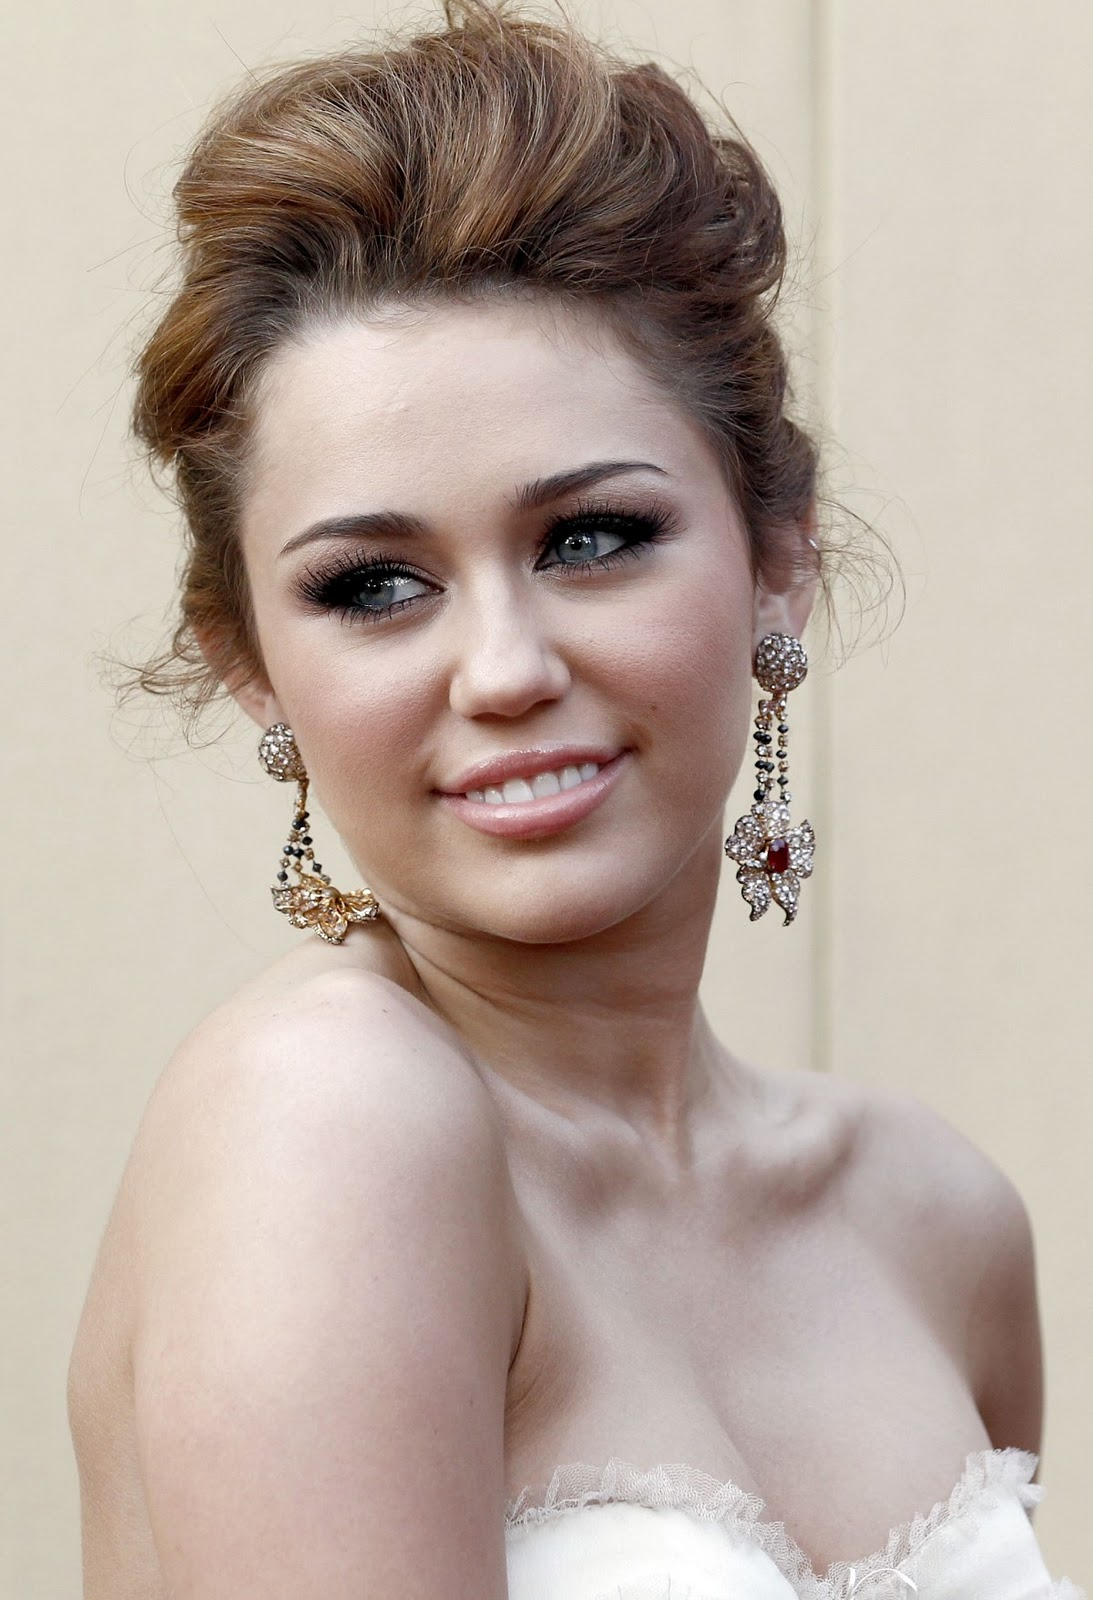 Top model bugil: Miley Cyrus . Young Hot Sexy Pretty